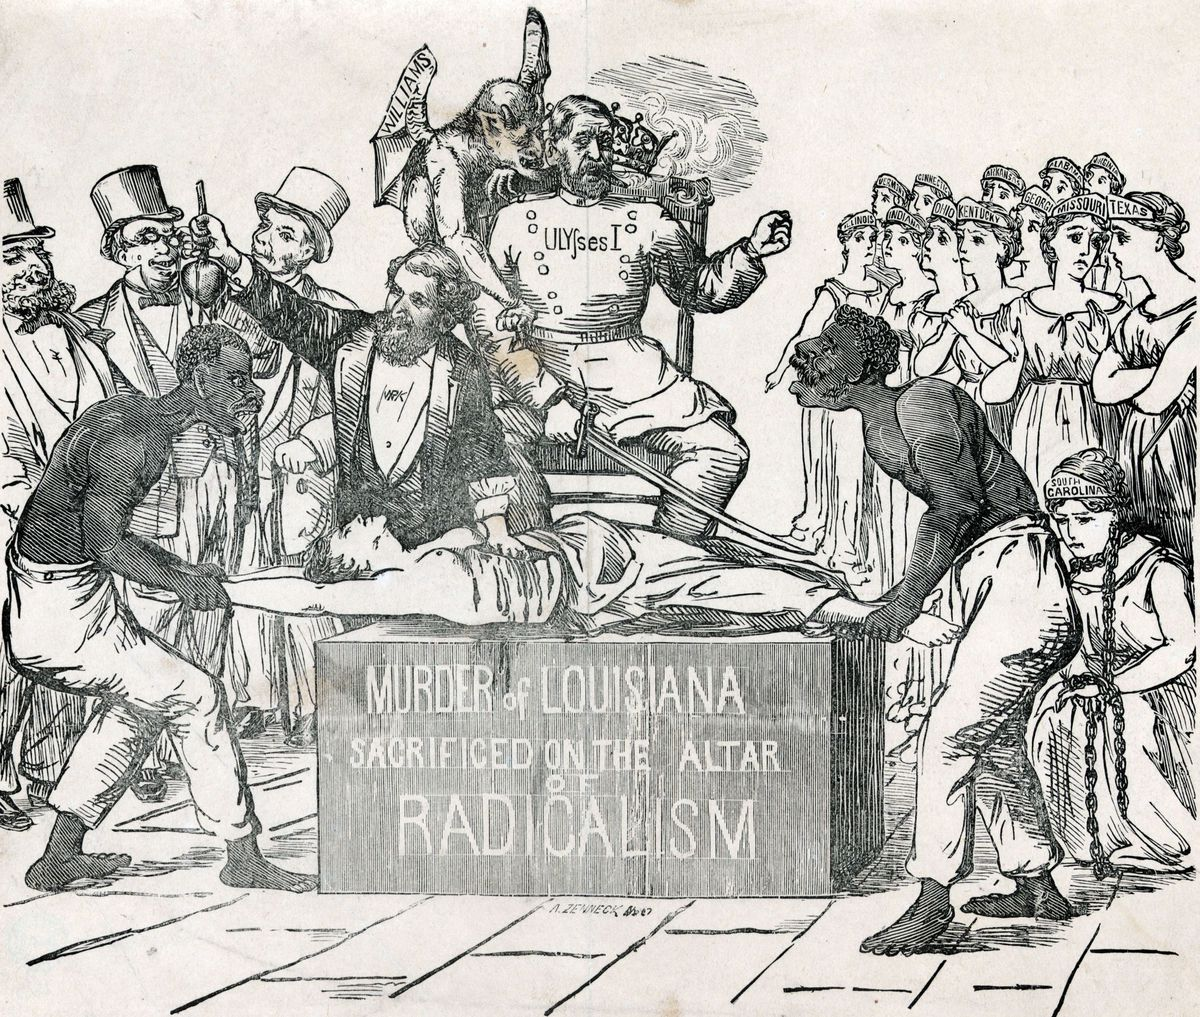 This cartoon is a white Democrat's look at the 1872 election in Louisiana: black Americans as slavish accessories to a monarchical (therefore illegitimate) federal government.